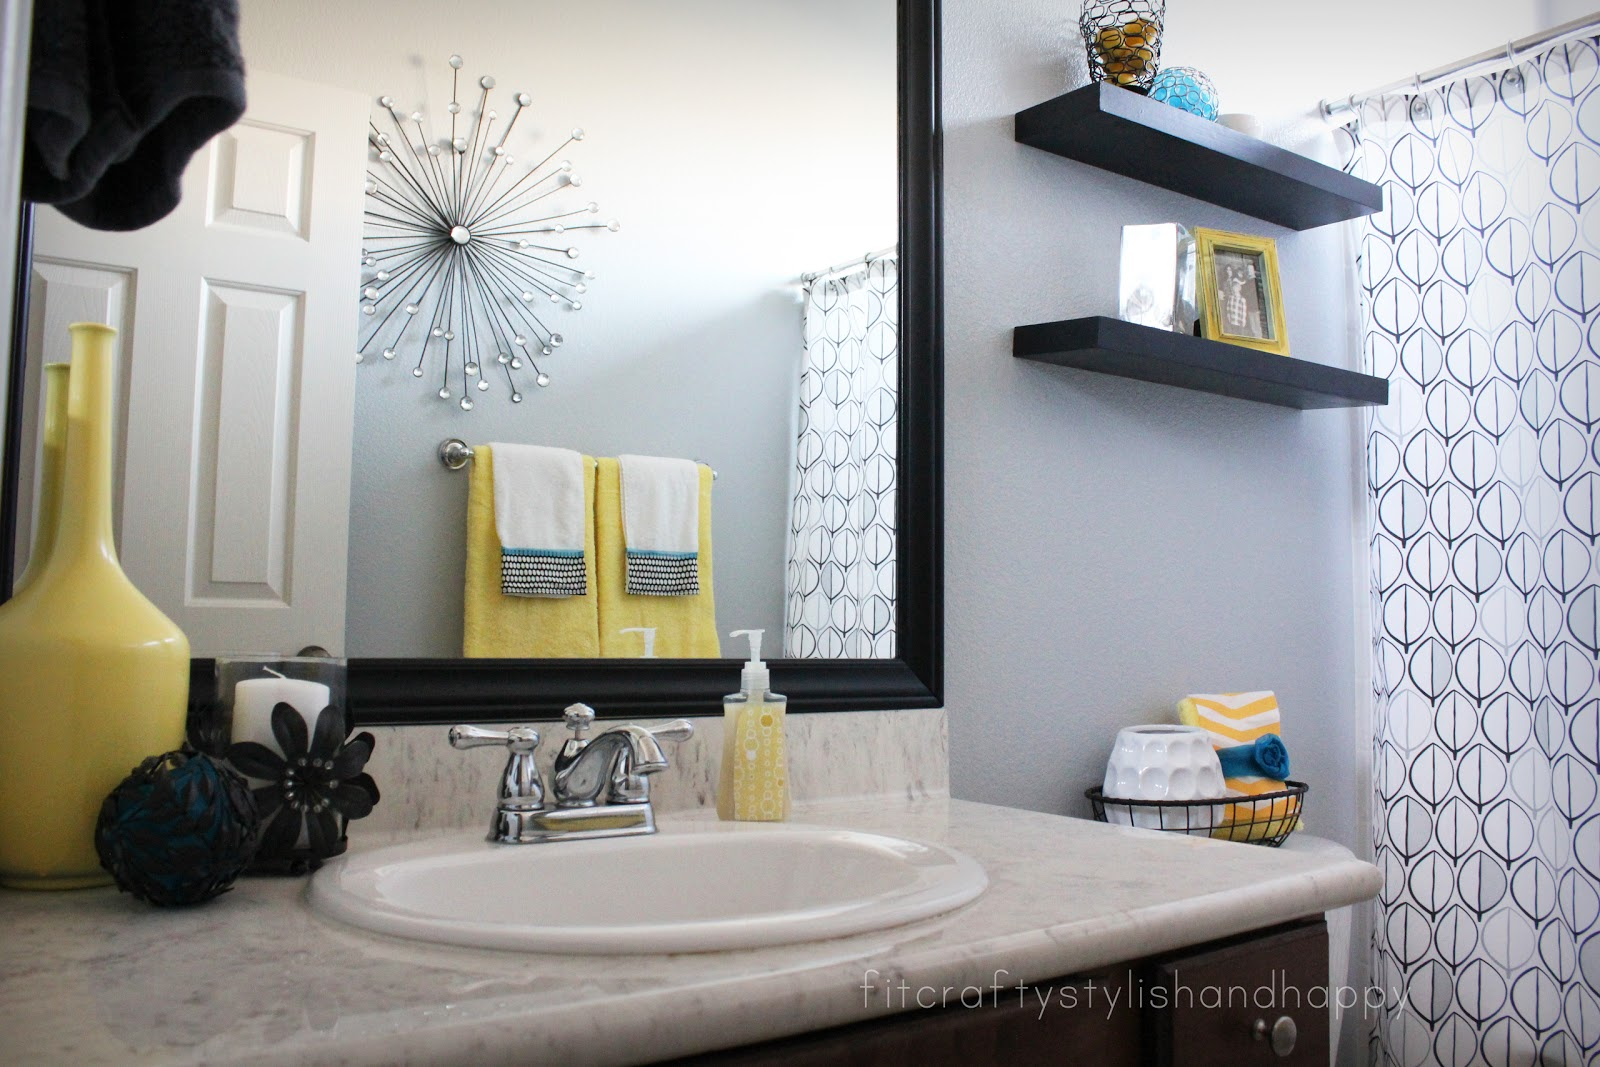 Fit, Crafty, Stylish and Happy: Guest Bathroom Makeover